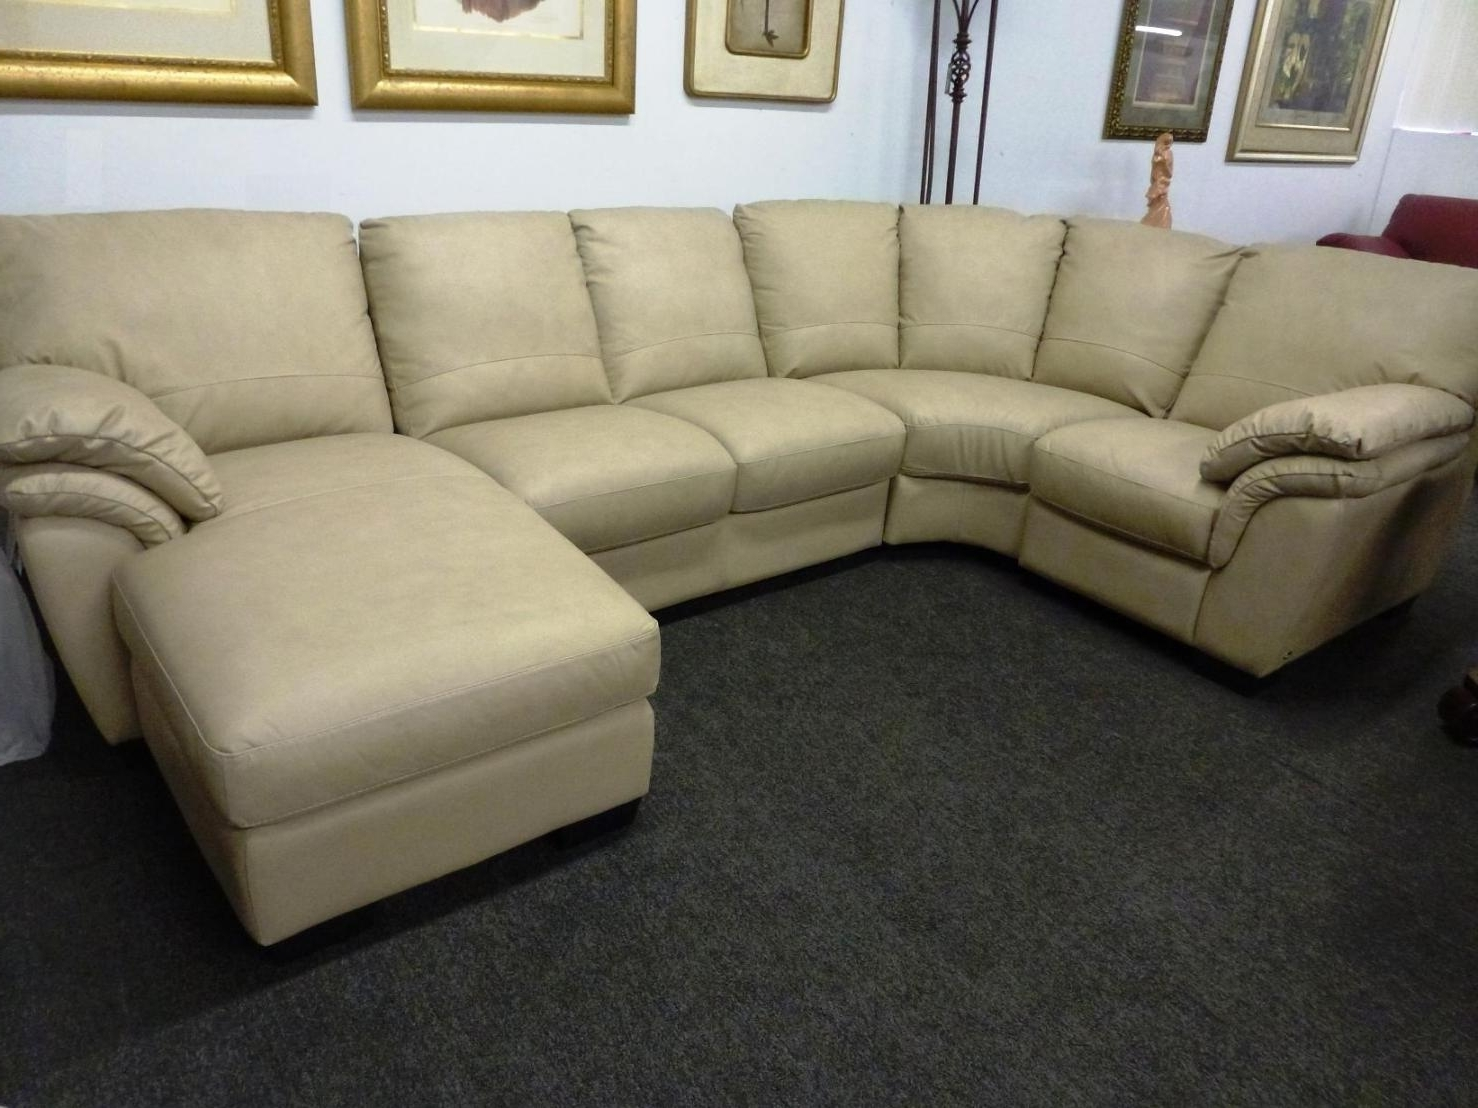 Natuzzi Sectional Sofas For 2019 Sectional Sofa Design: Best Leather Sectional Sofa Sale Natuzzi (View 16 of 20)